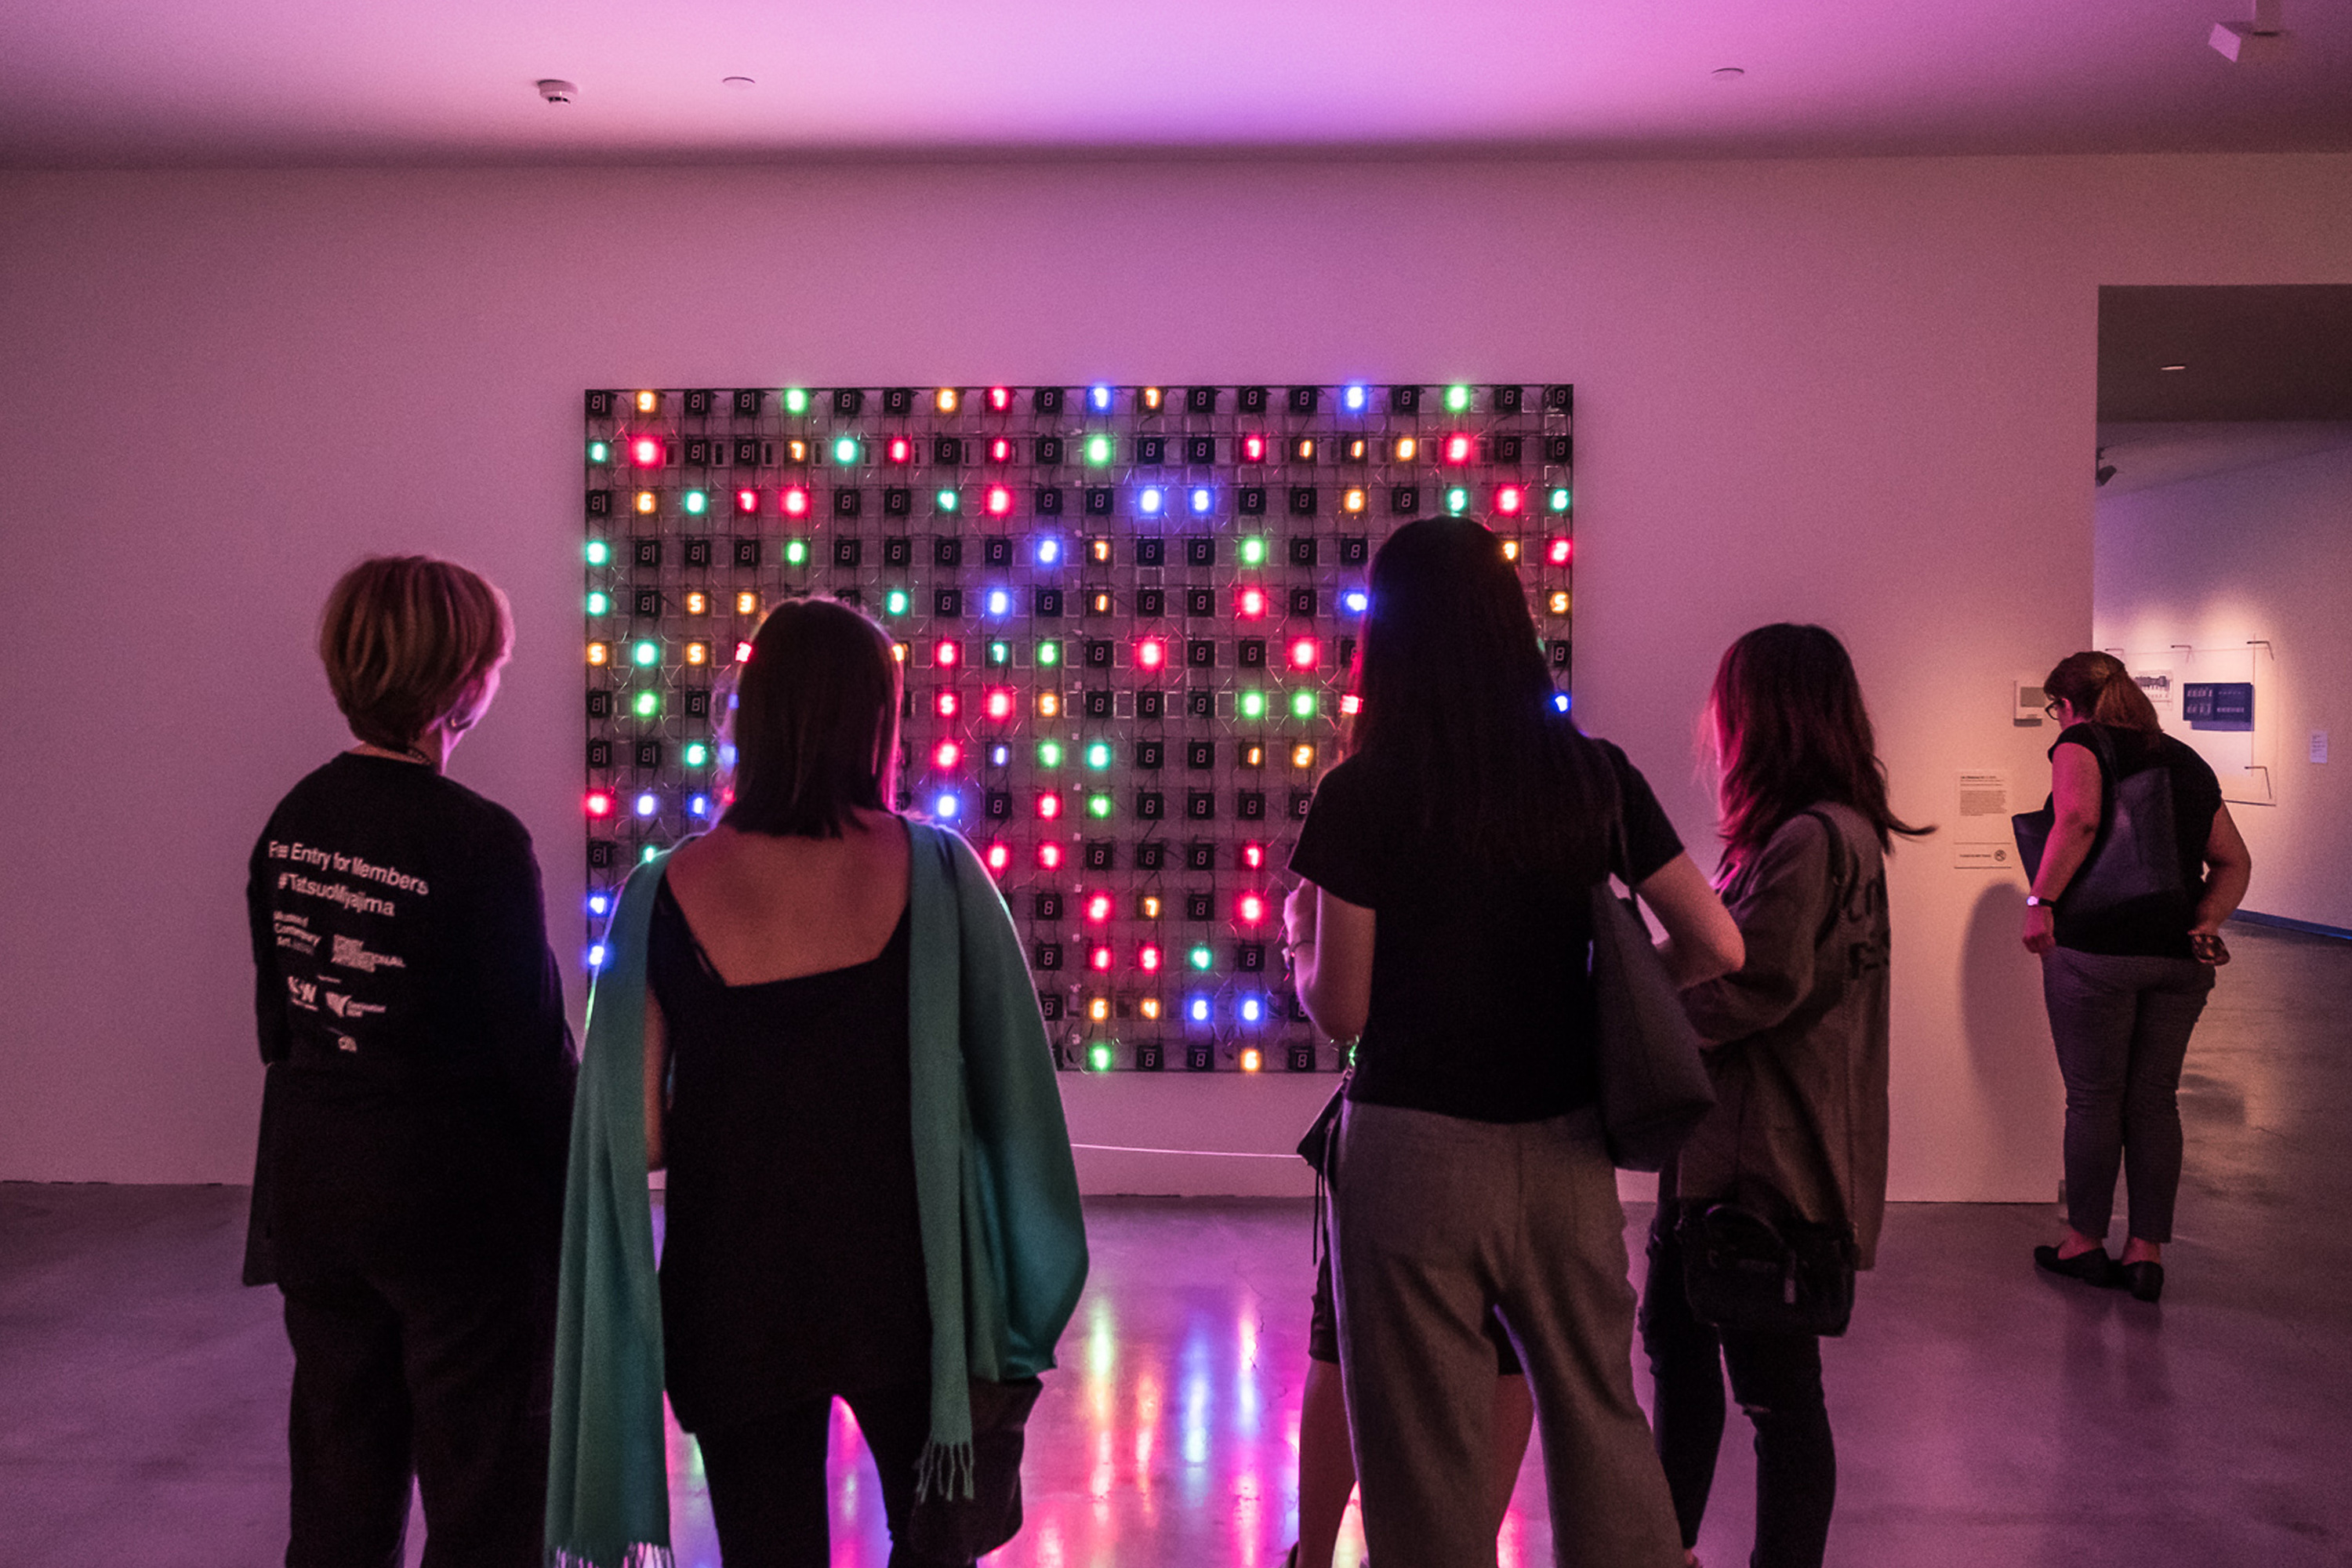 MCA Artbar 2016 Fri October 28 Megan Cope edition image feat installation view Tatsuo Miyajima Connect With Everything November 3 2016 (c) MCA photographer credit Leslie Liu